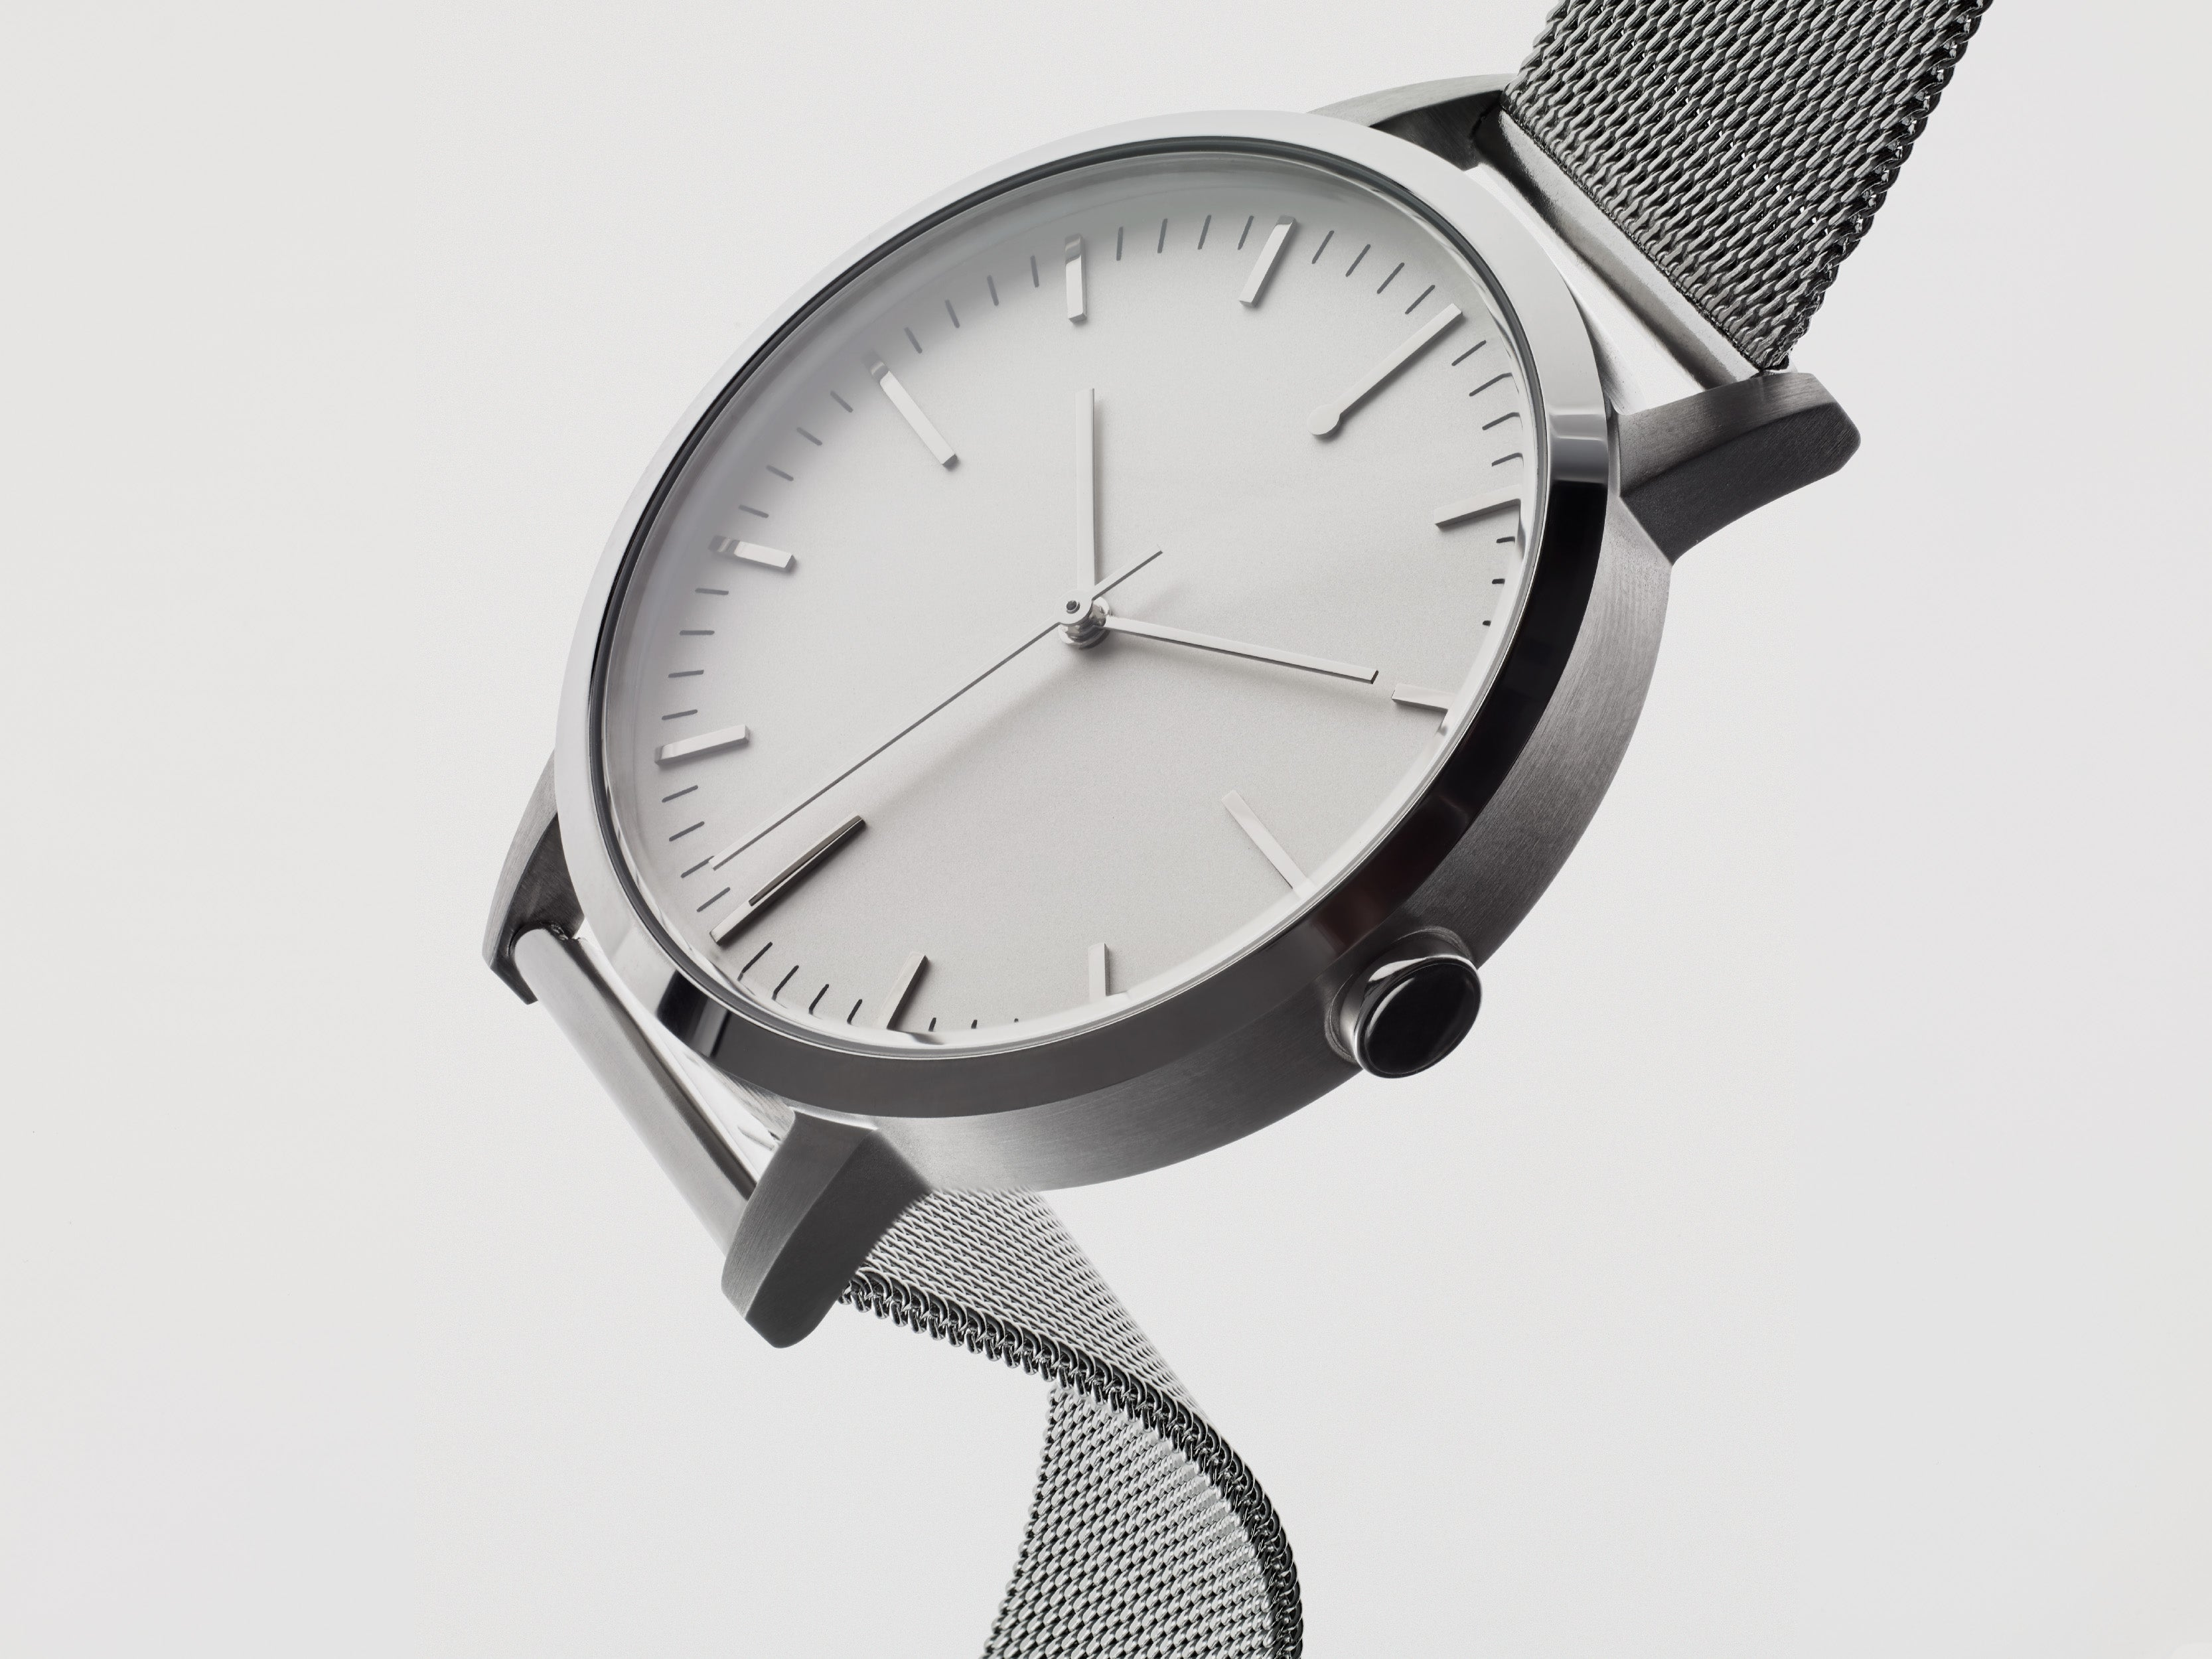 Ladies Watch Mesh Strap - Simple Design - Silver Mesh - UK - Under £100 - Freedom To Exist - Minimal Watches British Design